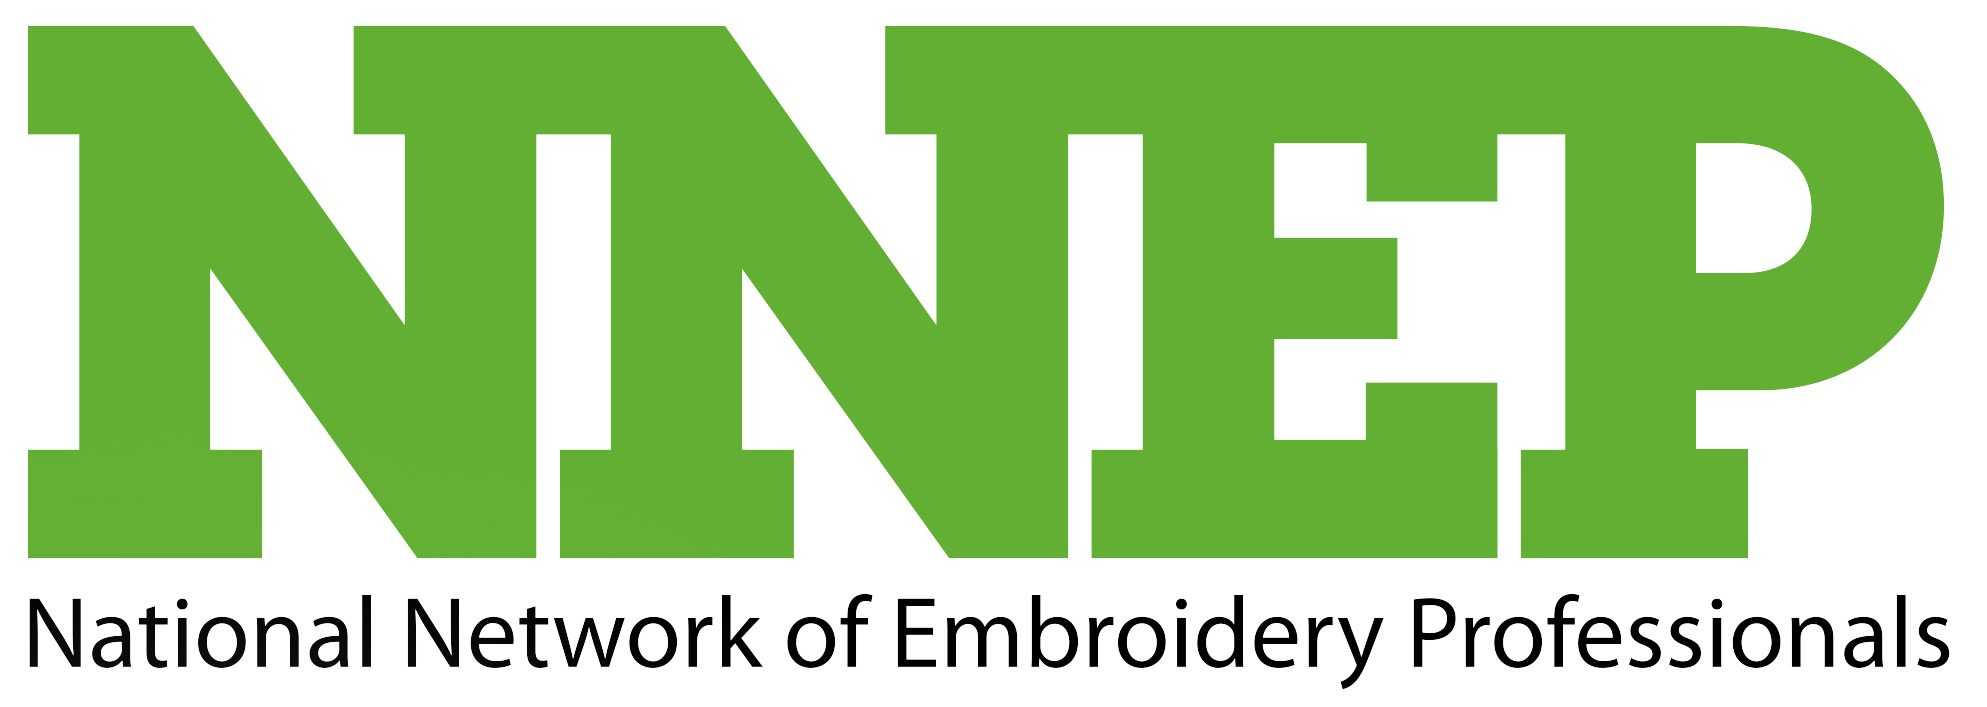 National Network of Embroidery Professionals